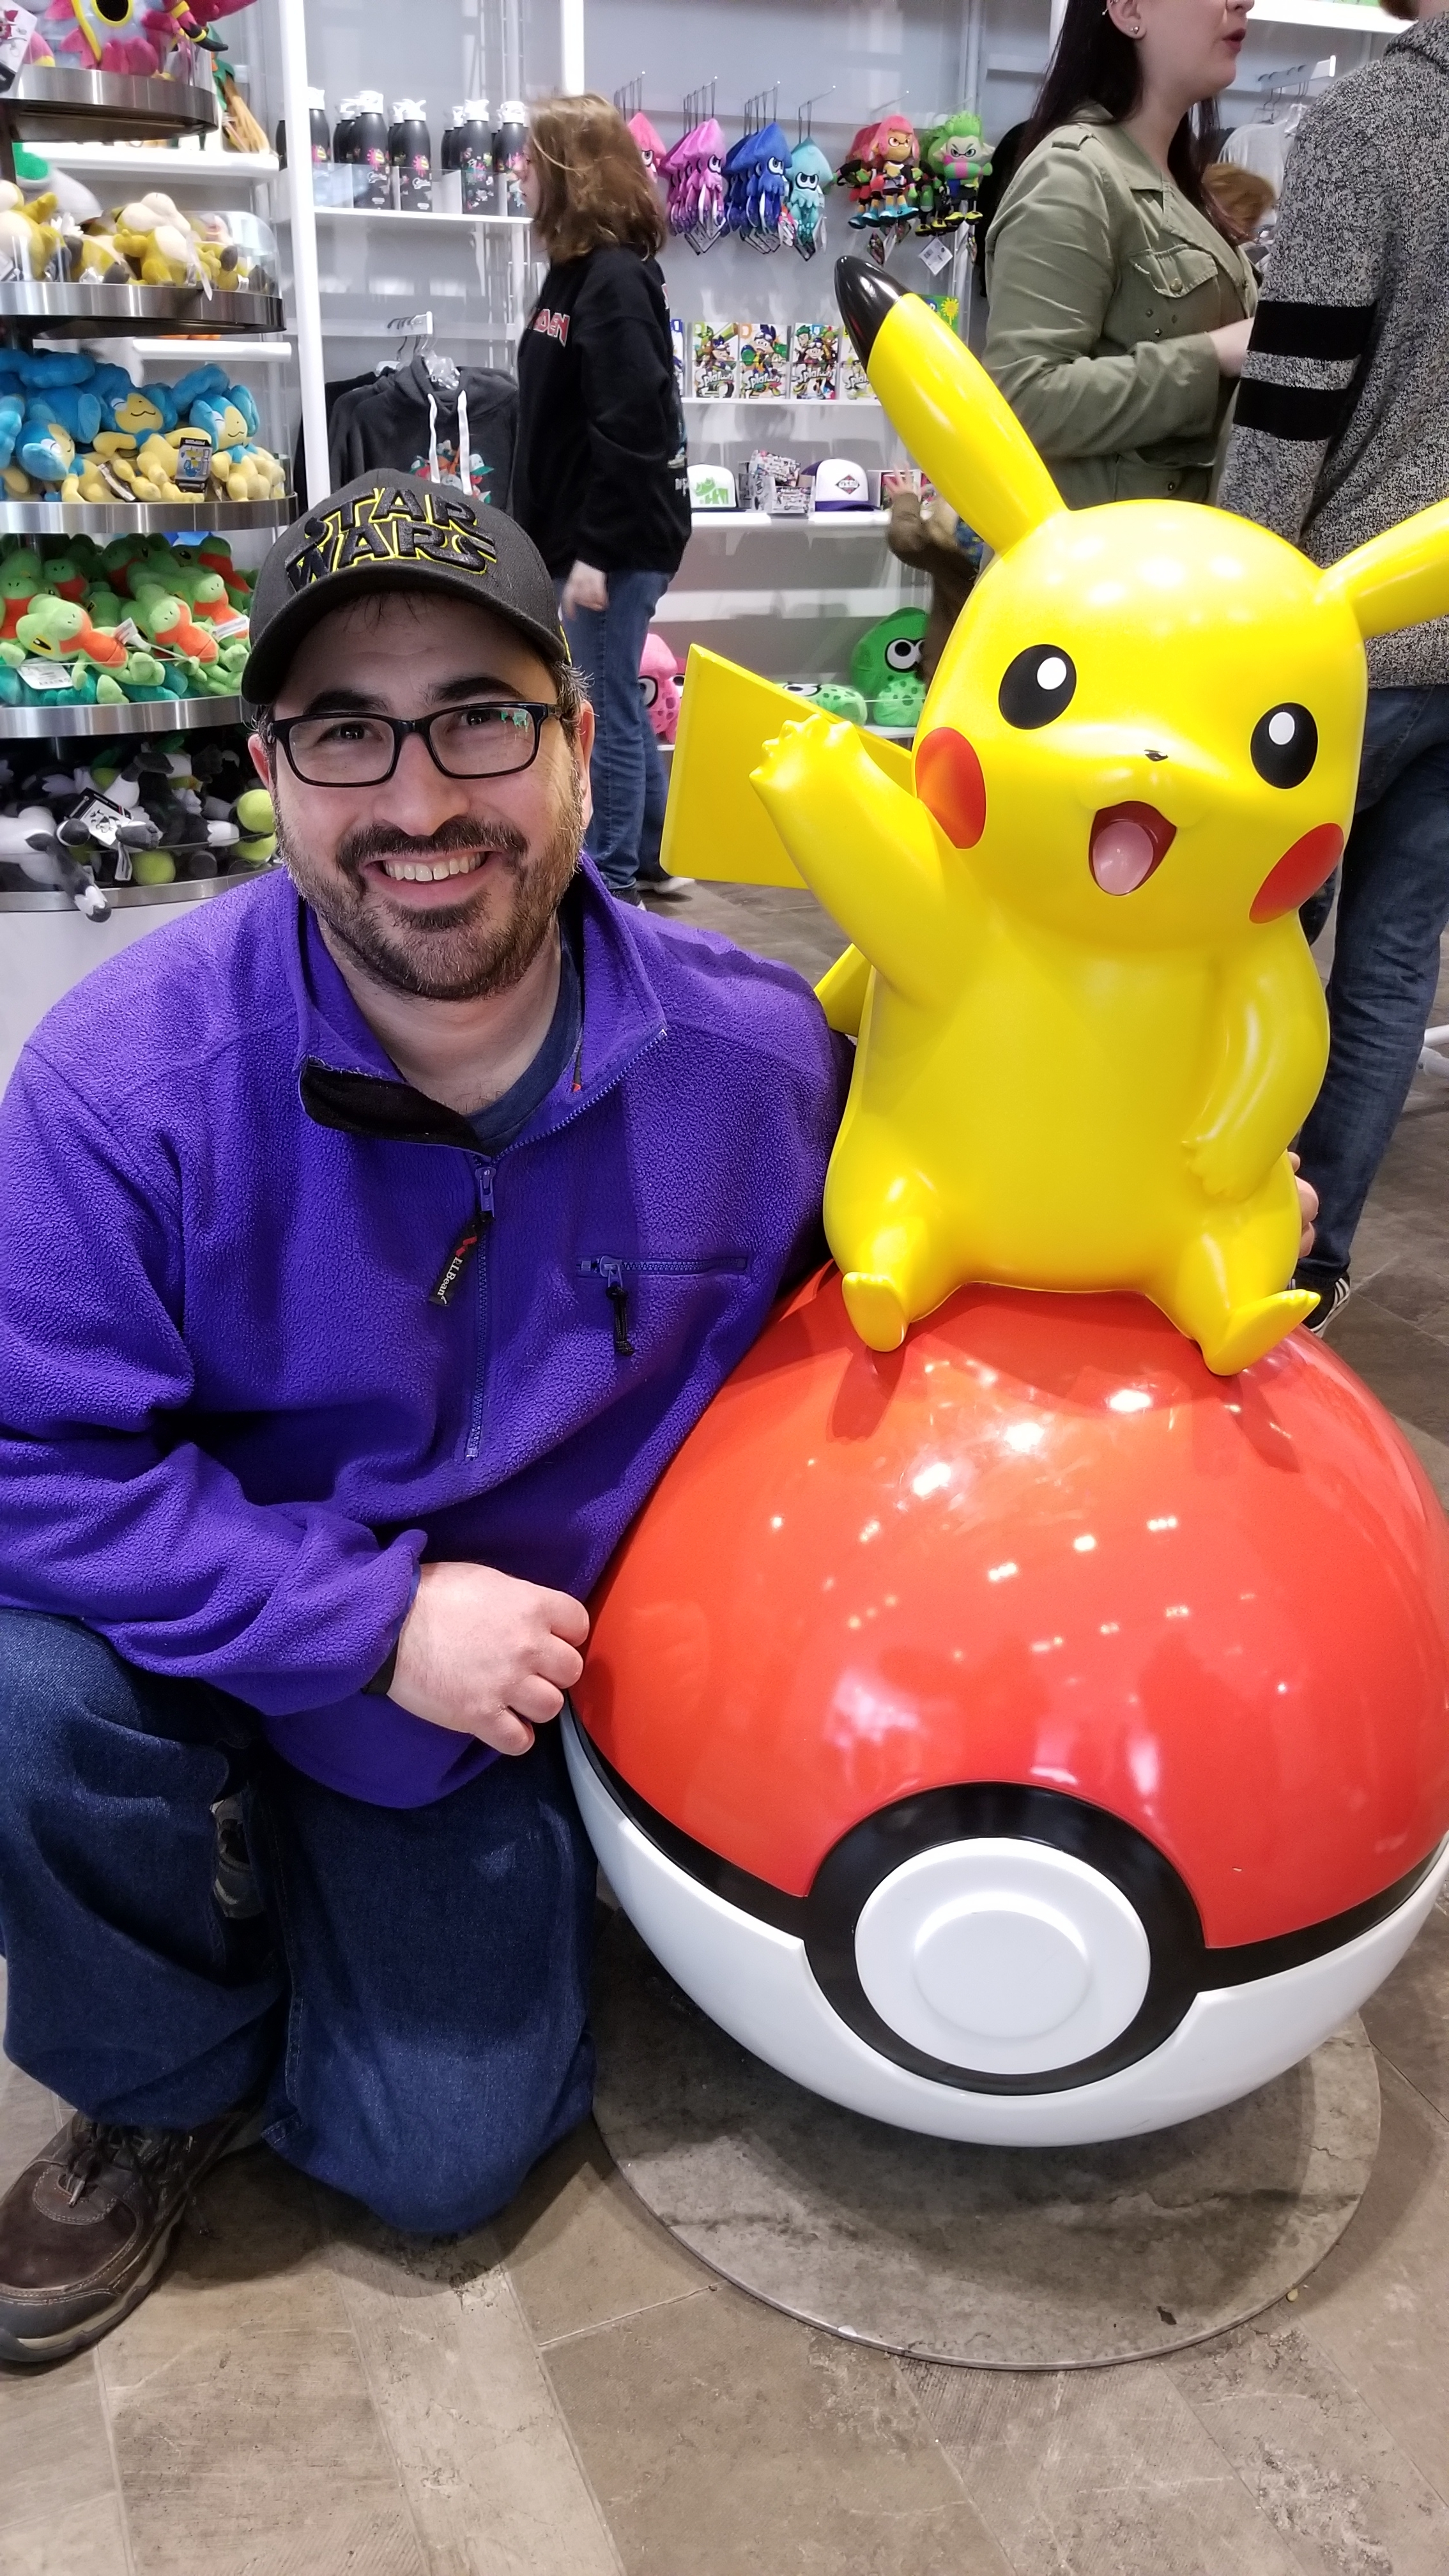 On our 'Free Day' the students wanted to go to the Nintendo Store in Rockefeller Center, and I found Pikachu.